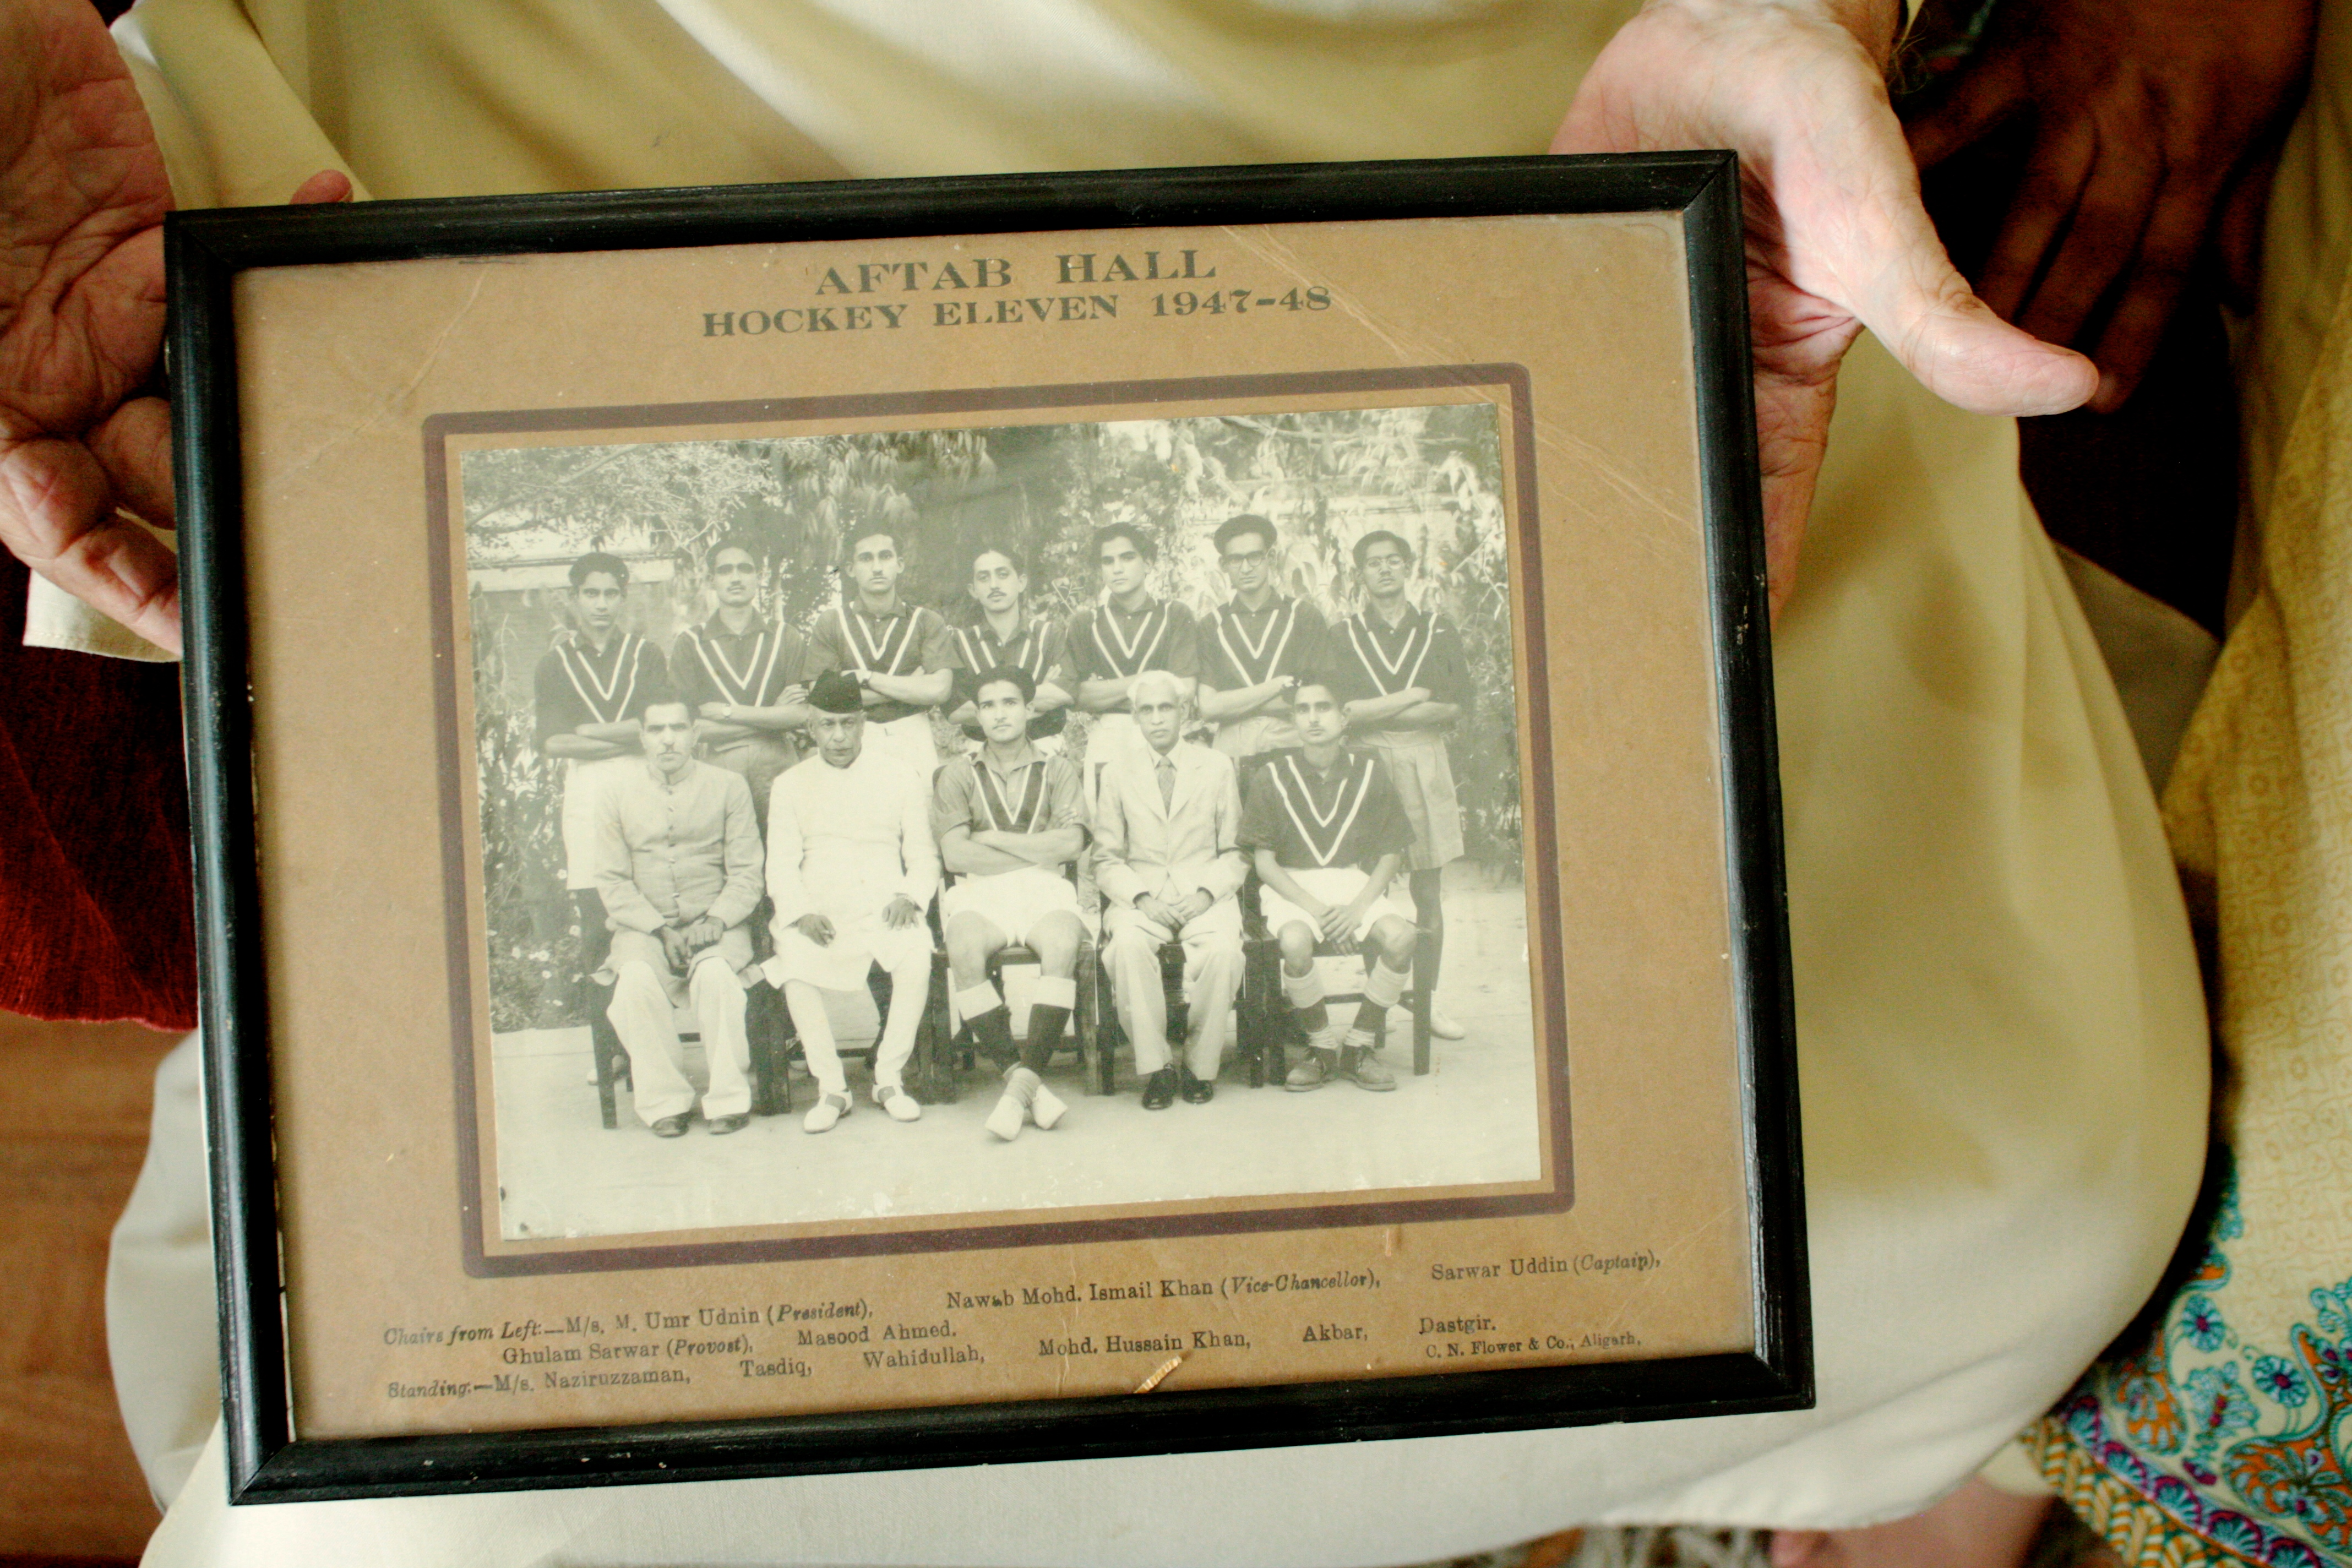 Framed photographs of the Hockey Club at Aligarh Muslim University- brought with a young boy when he migrated from Aligarh to Lahore in 1953